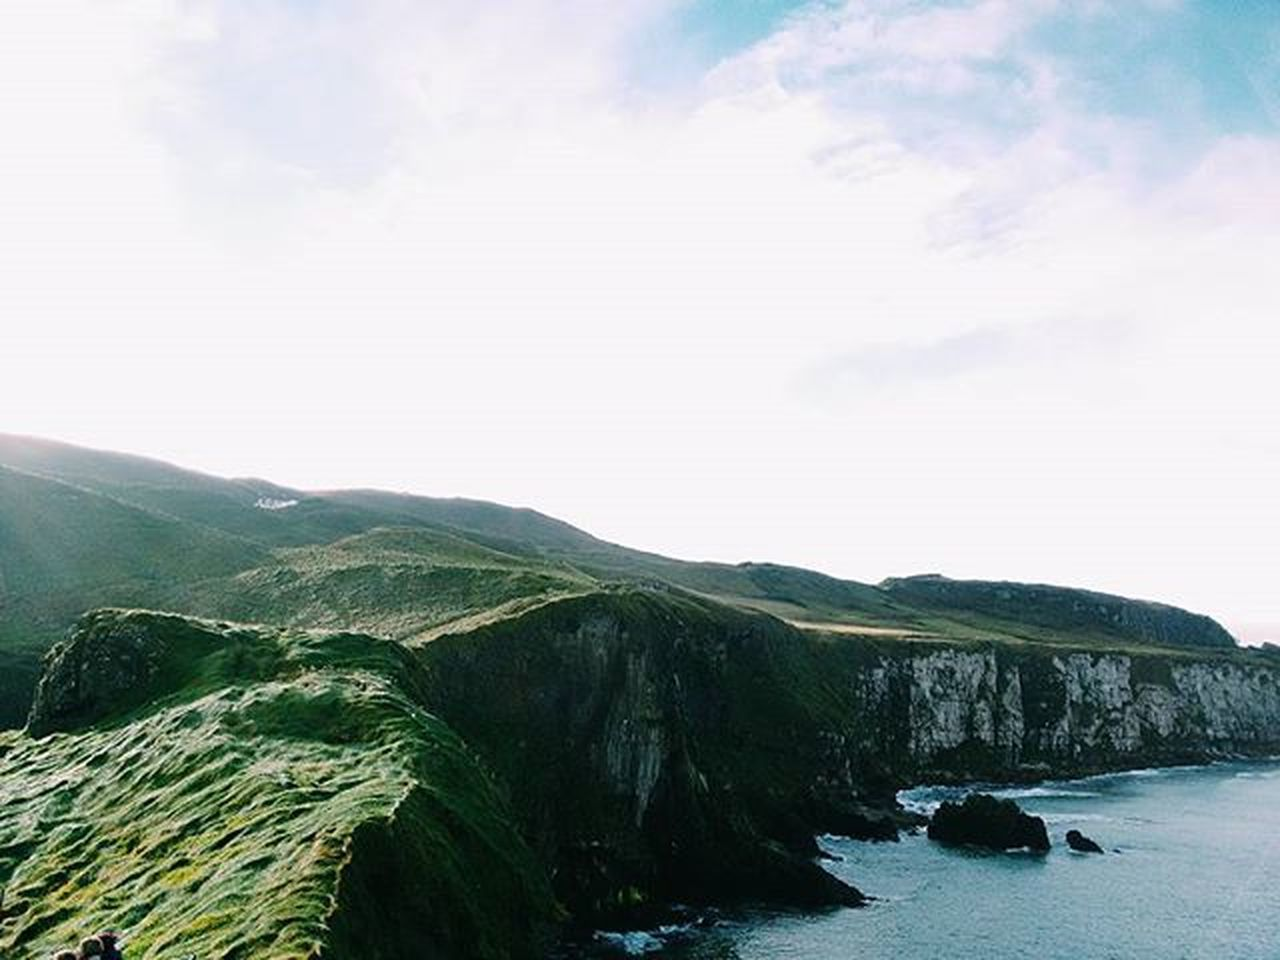 Crossed a scary rope bridge and got this view as a reward Ireland Northernireland Britain Uk Travel Igtravel Travelgram Vscofolk Vscocam VSCO Nature Landscape Cliffs Green